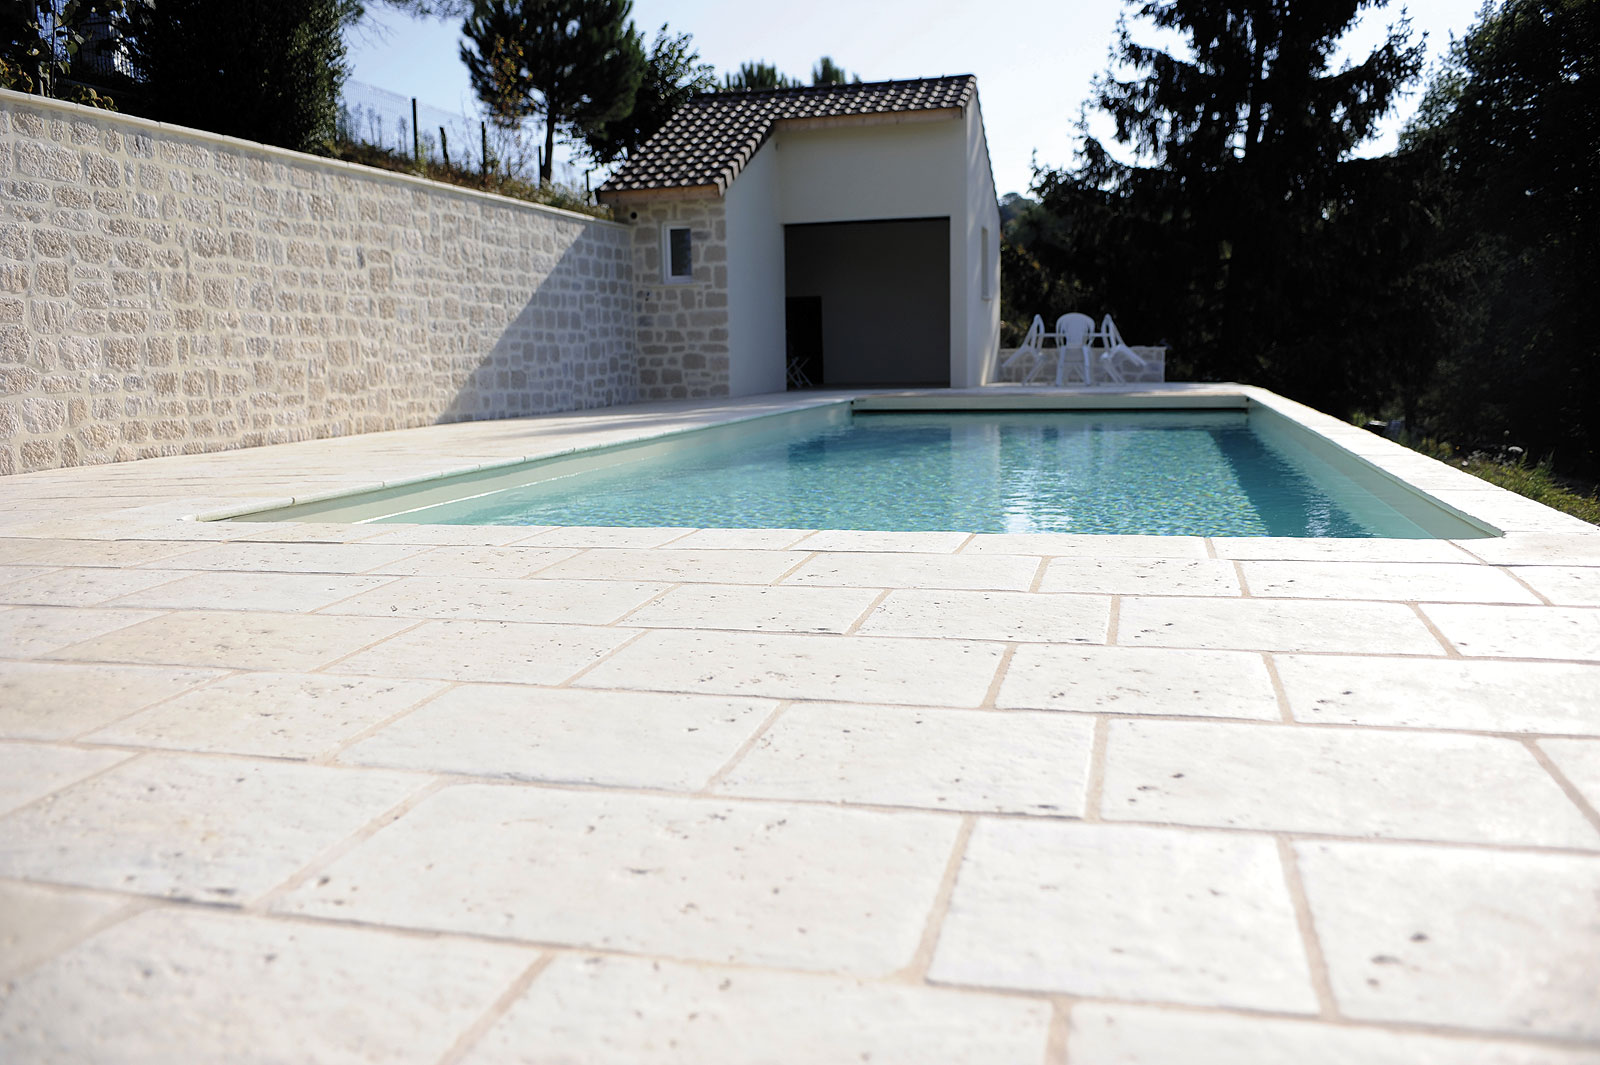 Carrelage terrasse for Carrelage de piscine